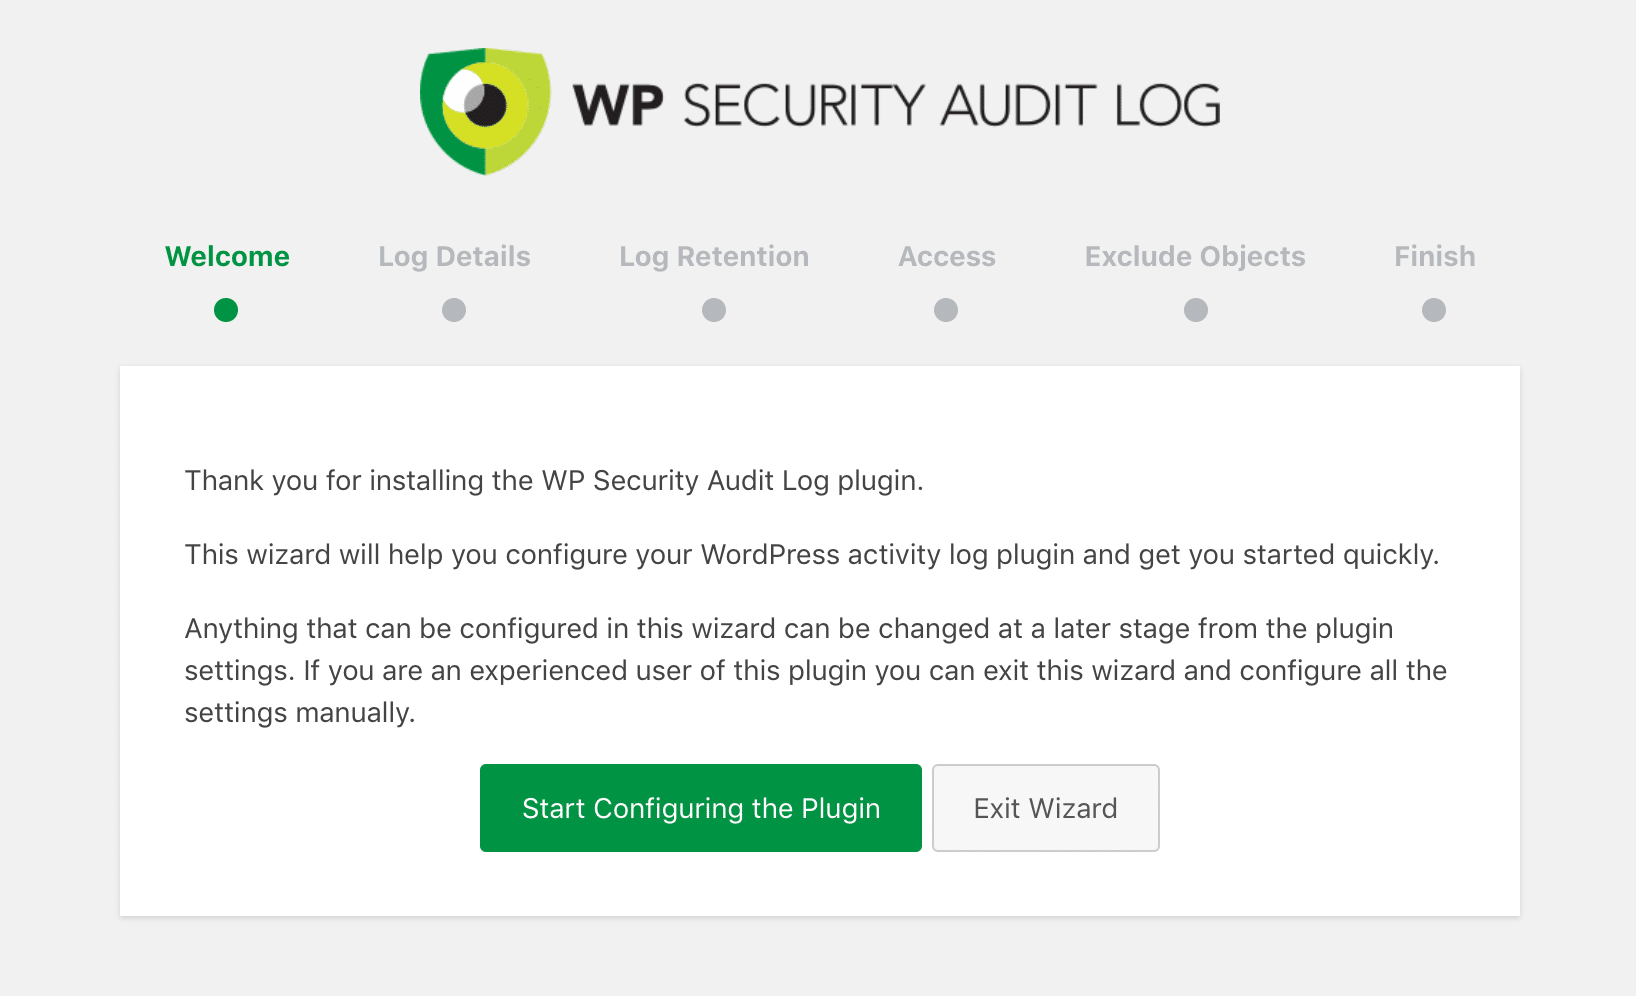 Konfigurera WP Security Audit Log-pluginet